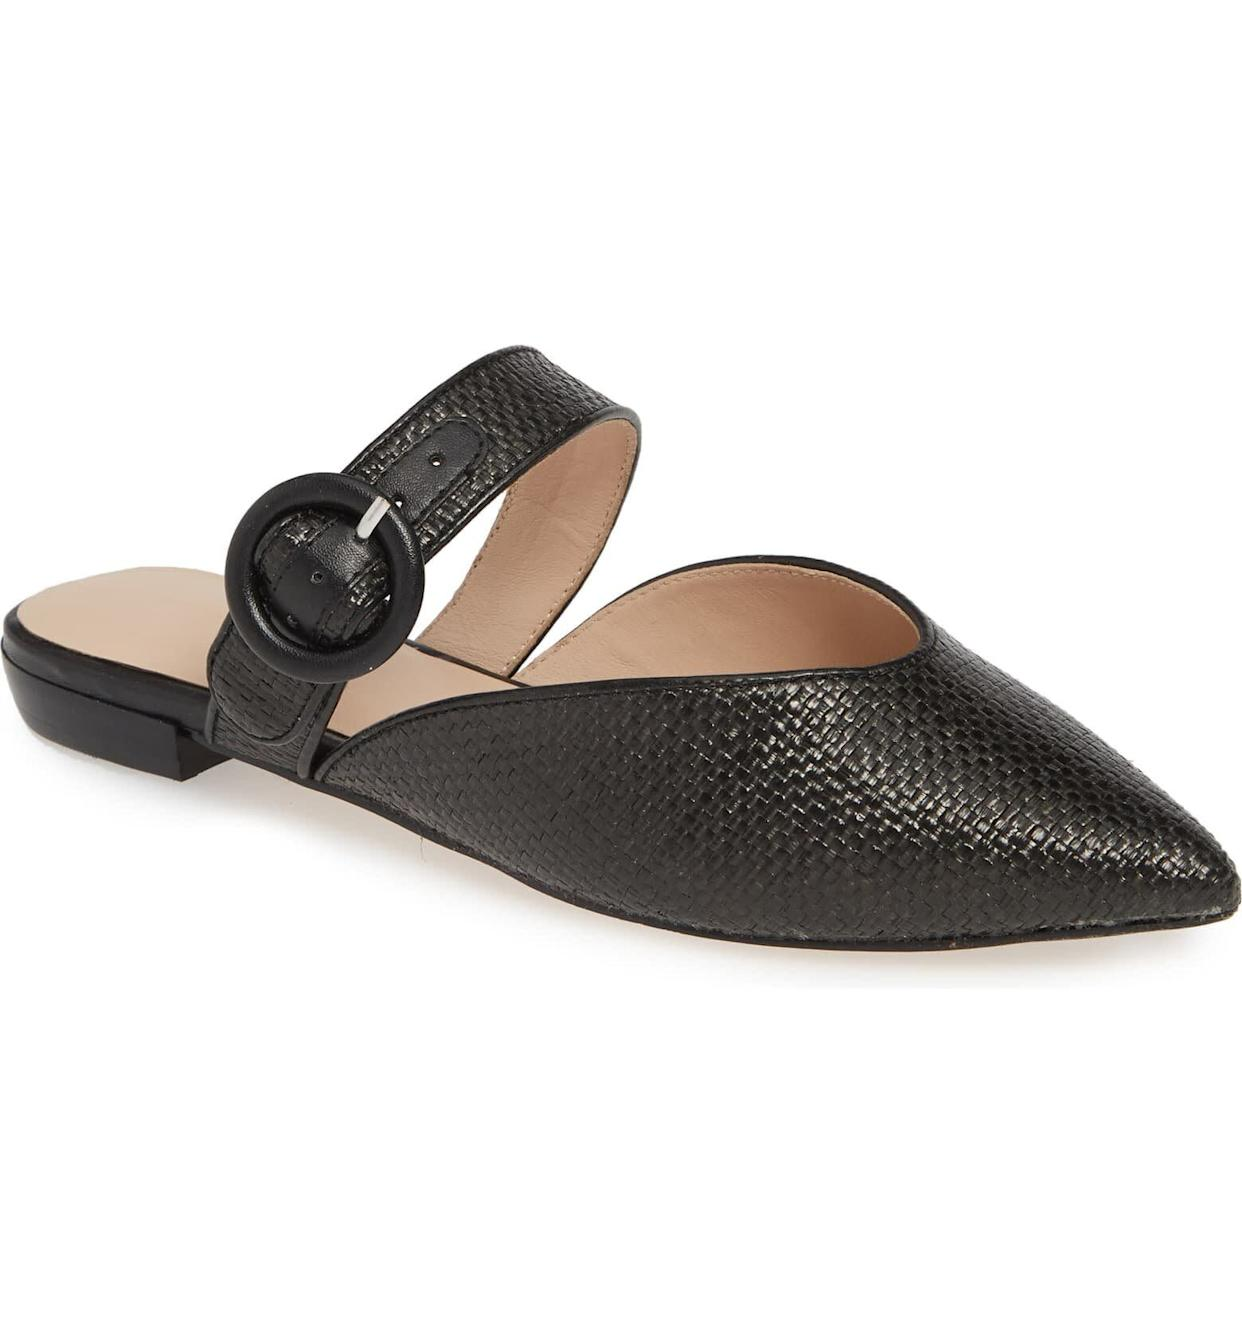 <strong><span>Originally $90, get them on sale for $54 at Nordstrom.</span></strong>